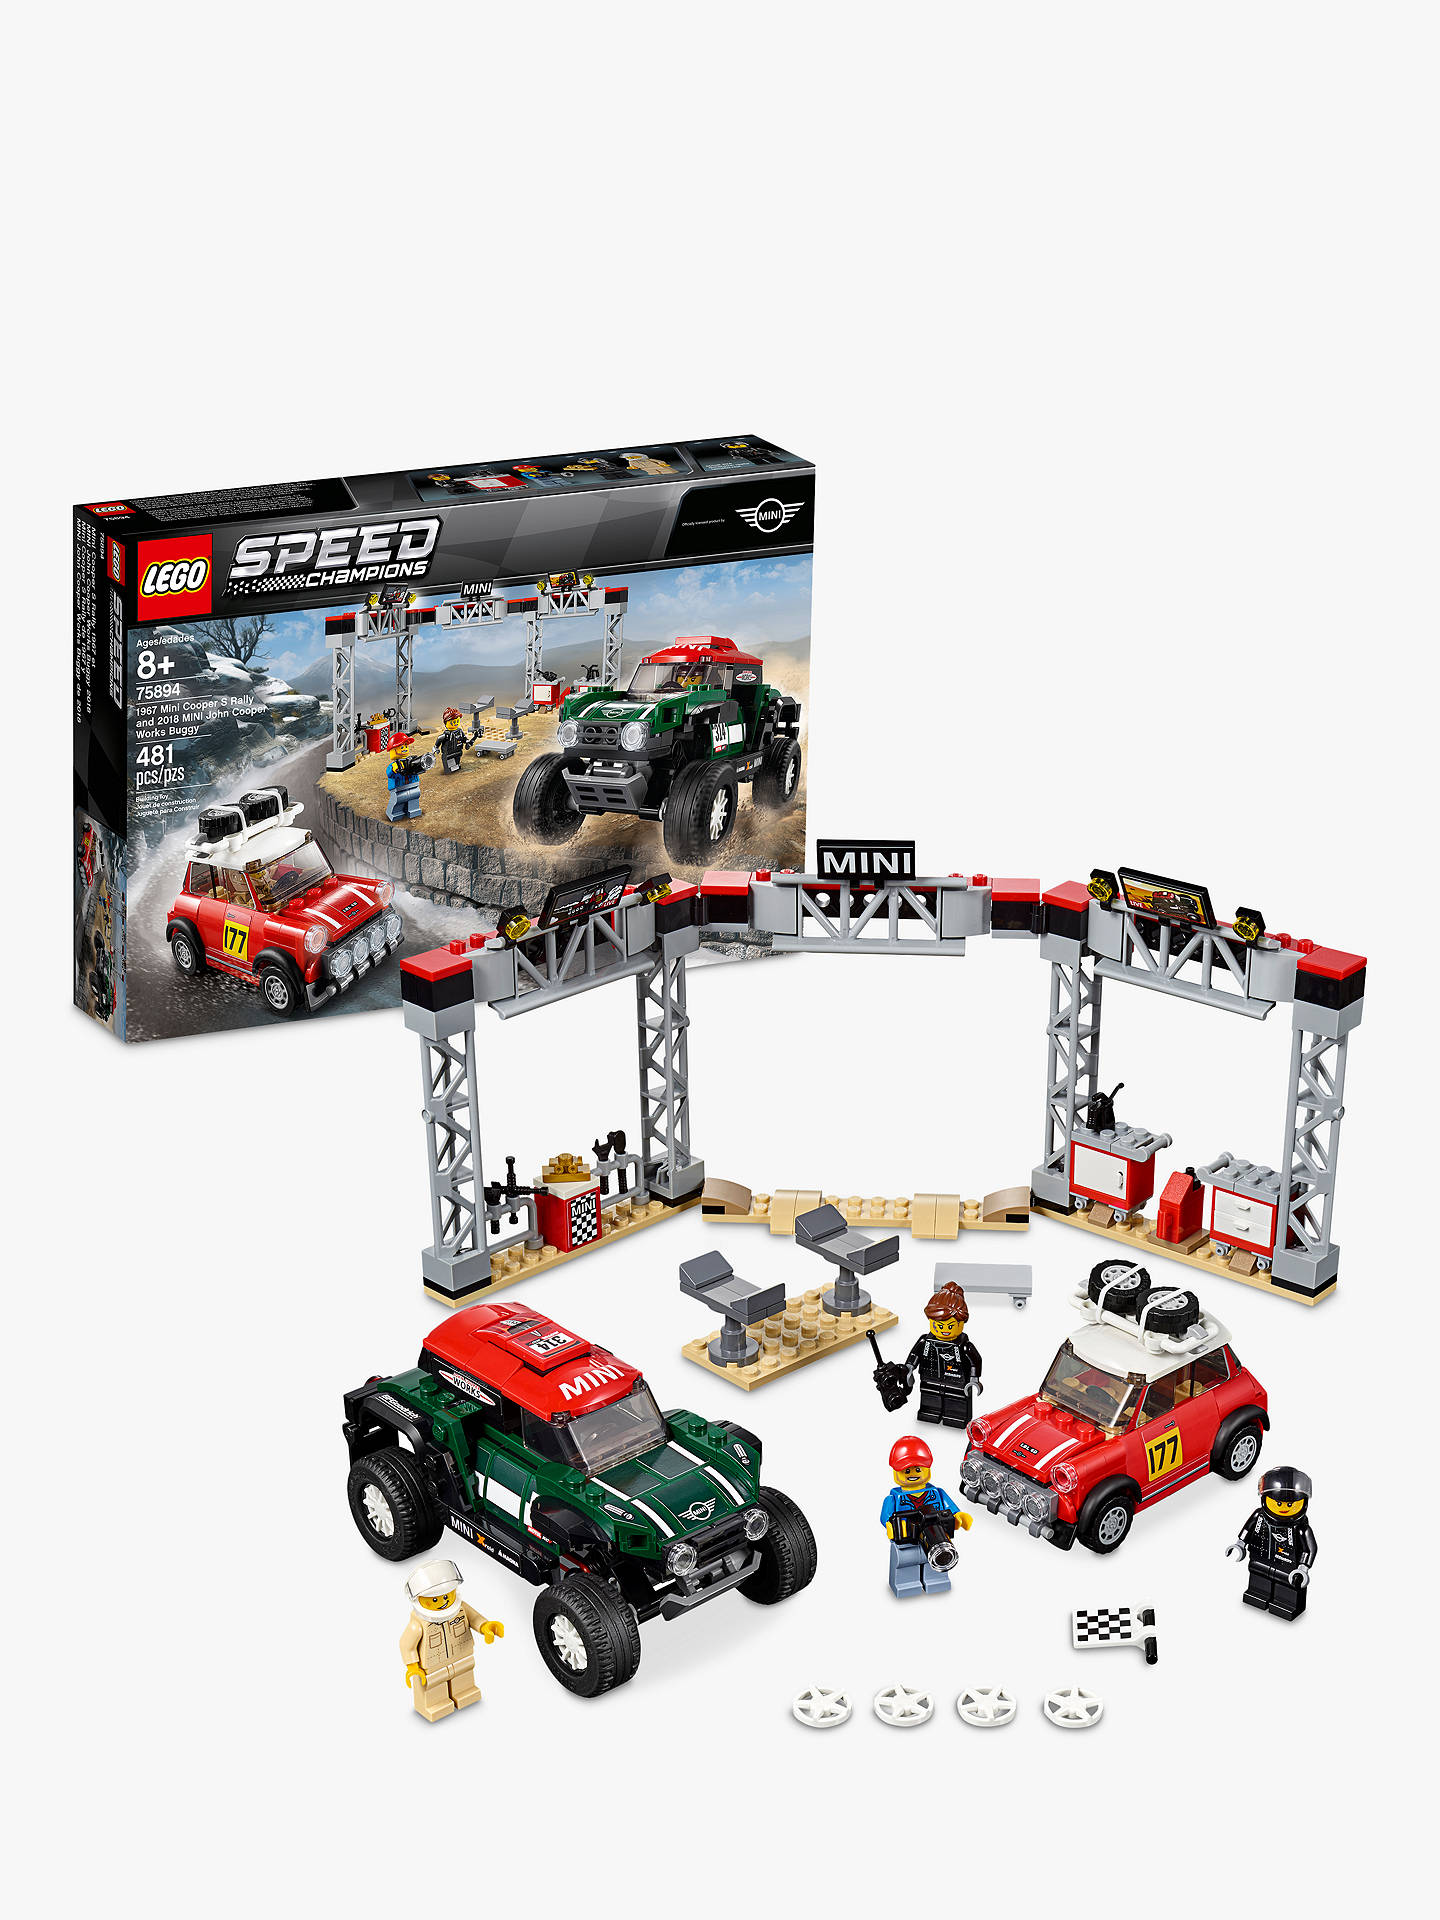 Lego Speed Champions 75894 1967 Mini Cooper S Rally And 2018 Mini John Cooper Works Buggy by Lego